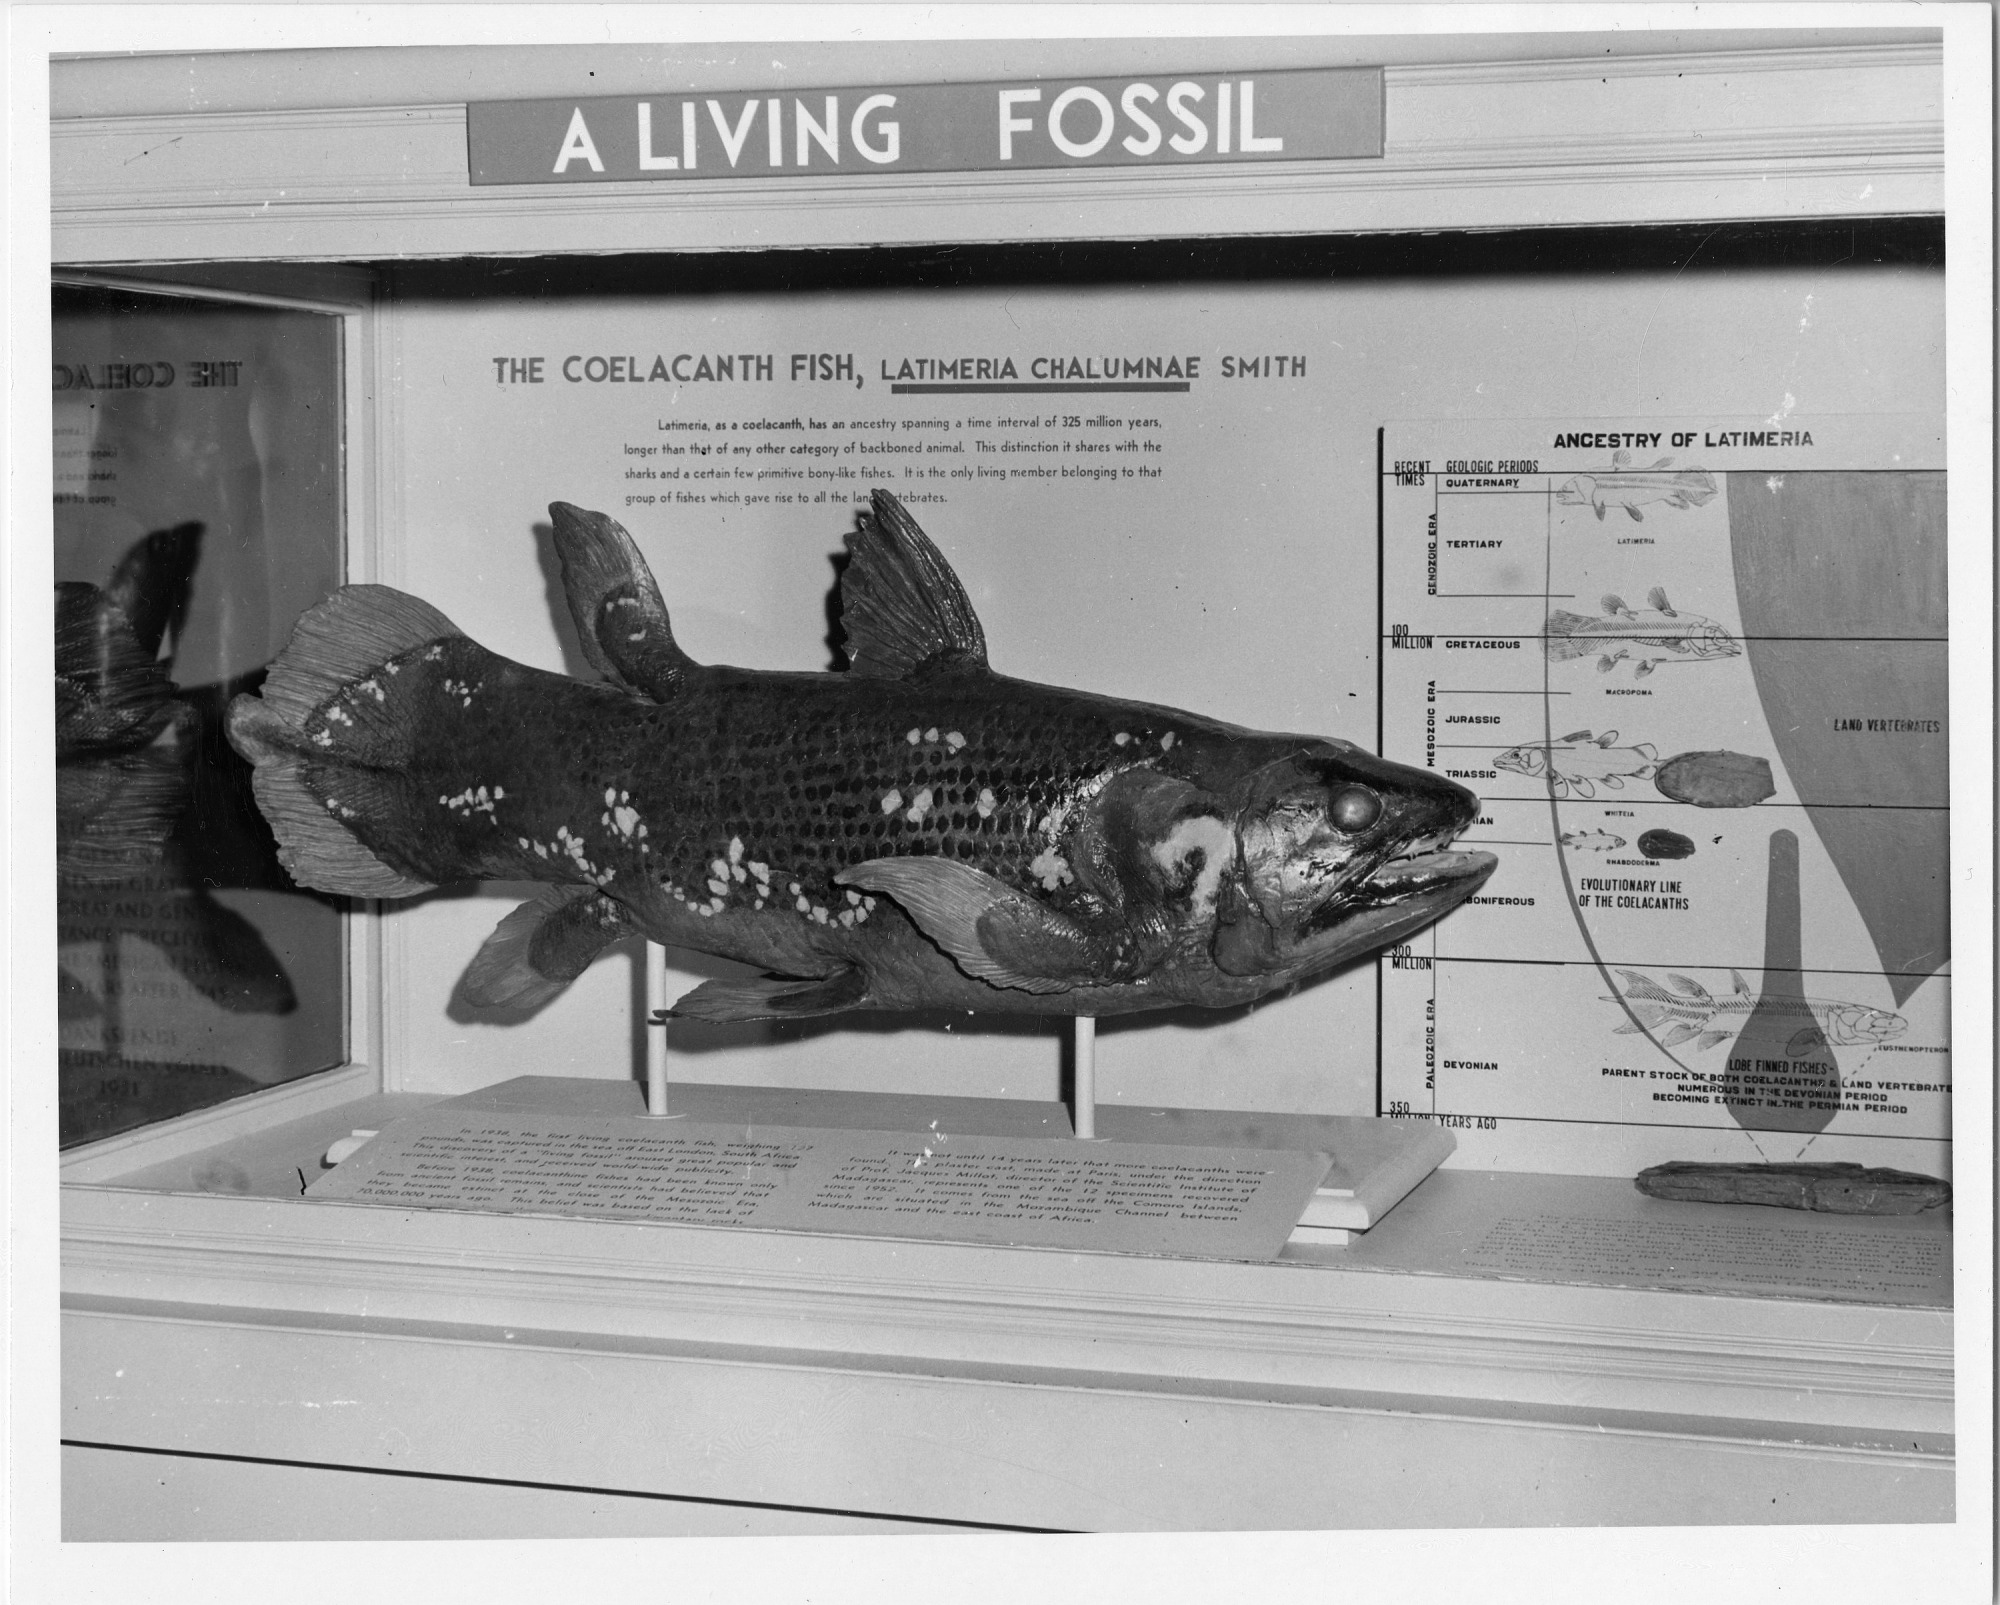 Coelacanth Fish, NMNH